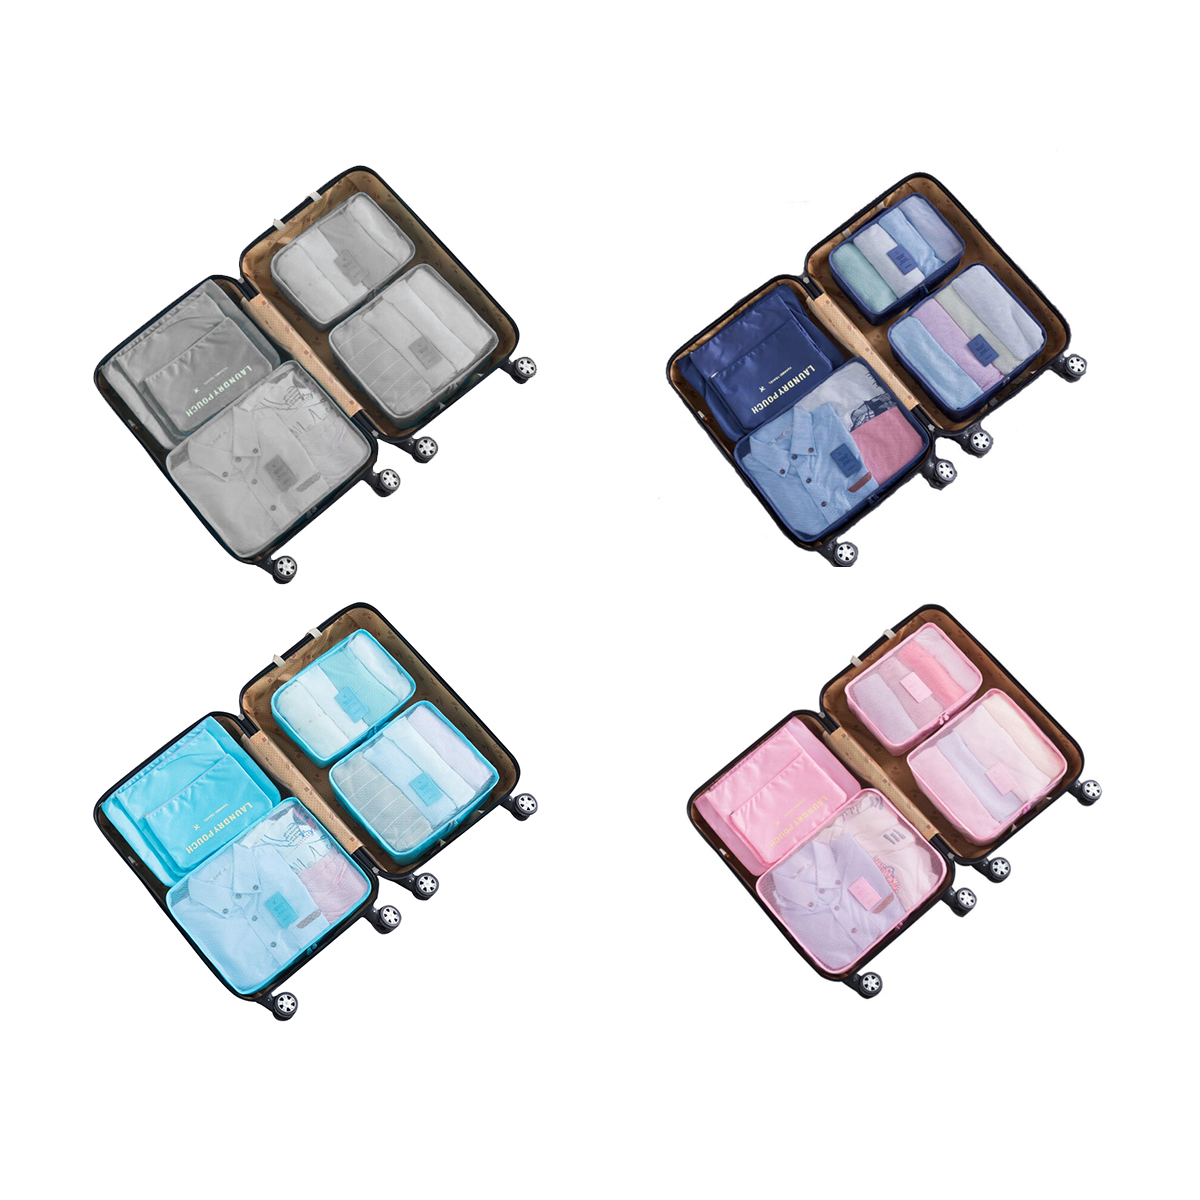 IAG-Travel-Packing-Cube-set-of-6-Hero-1200×1200